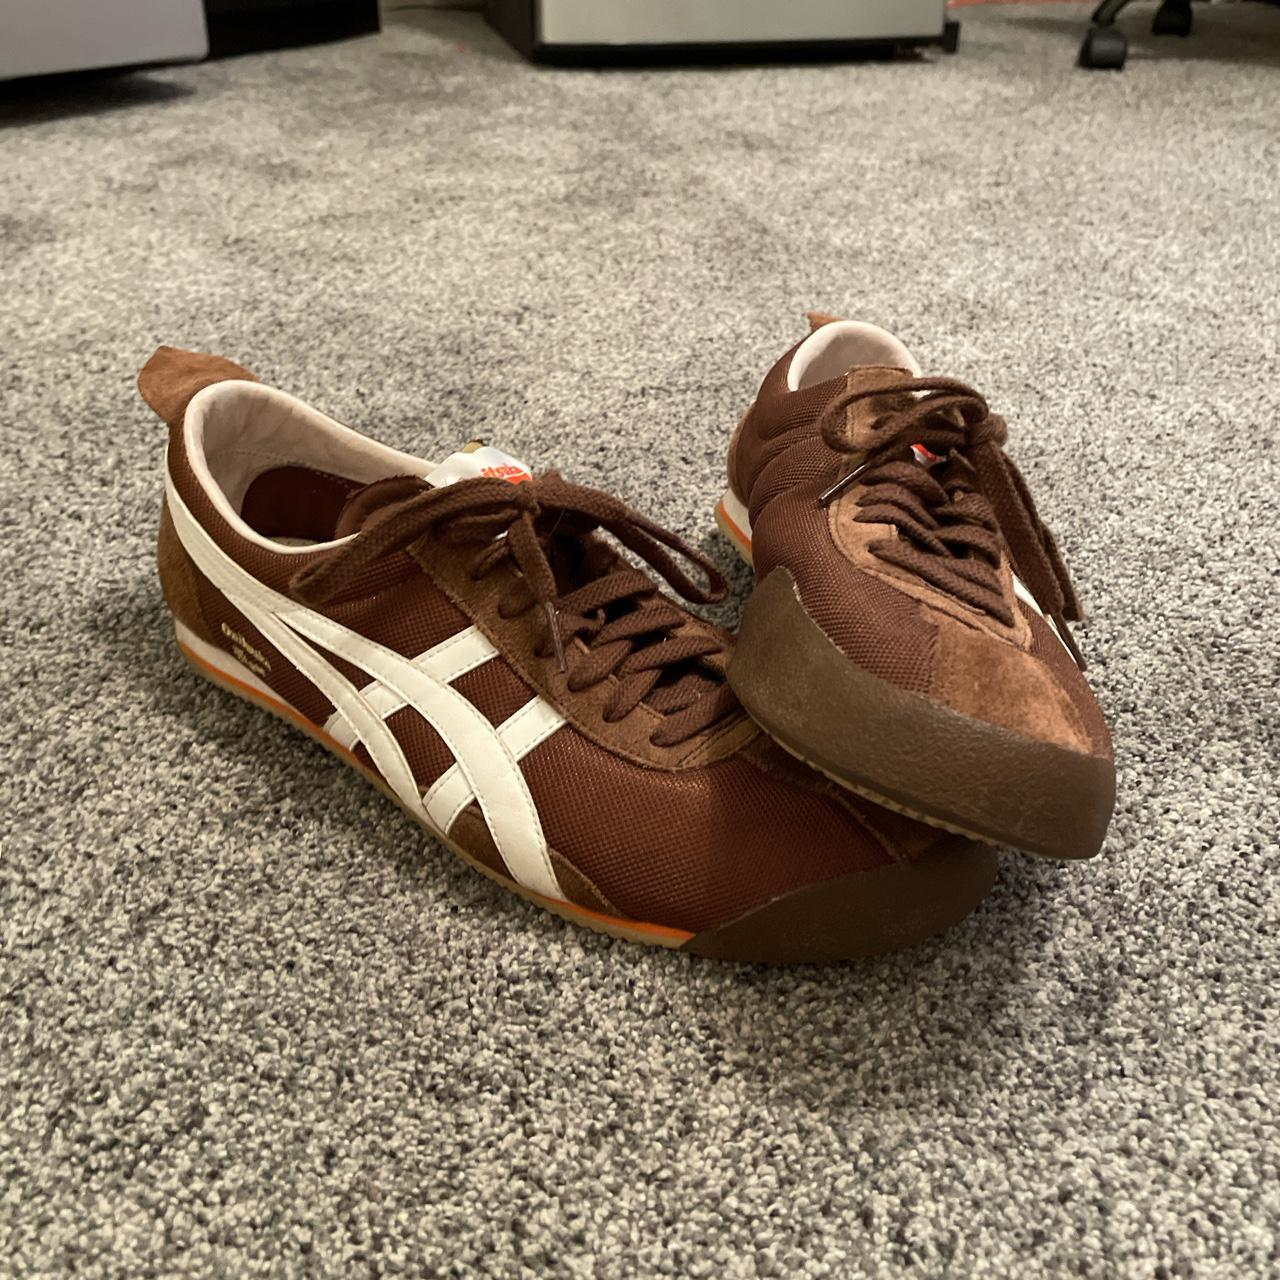 Product Image 1 - Onitsuka Tiger Mexico 66   Size: